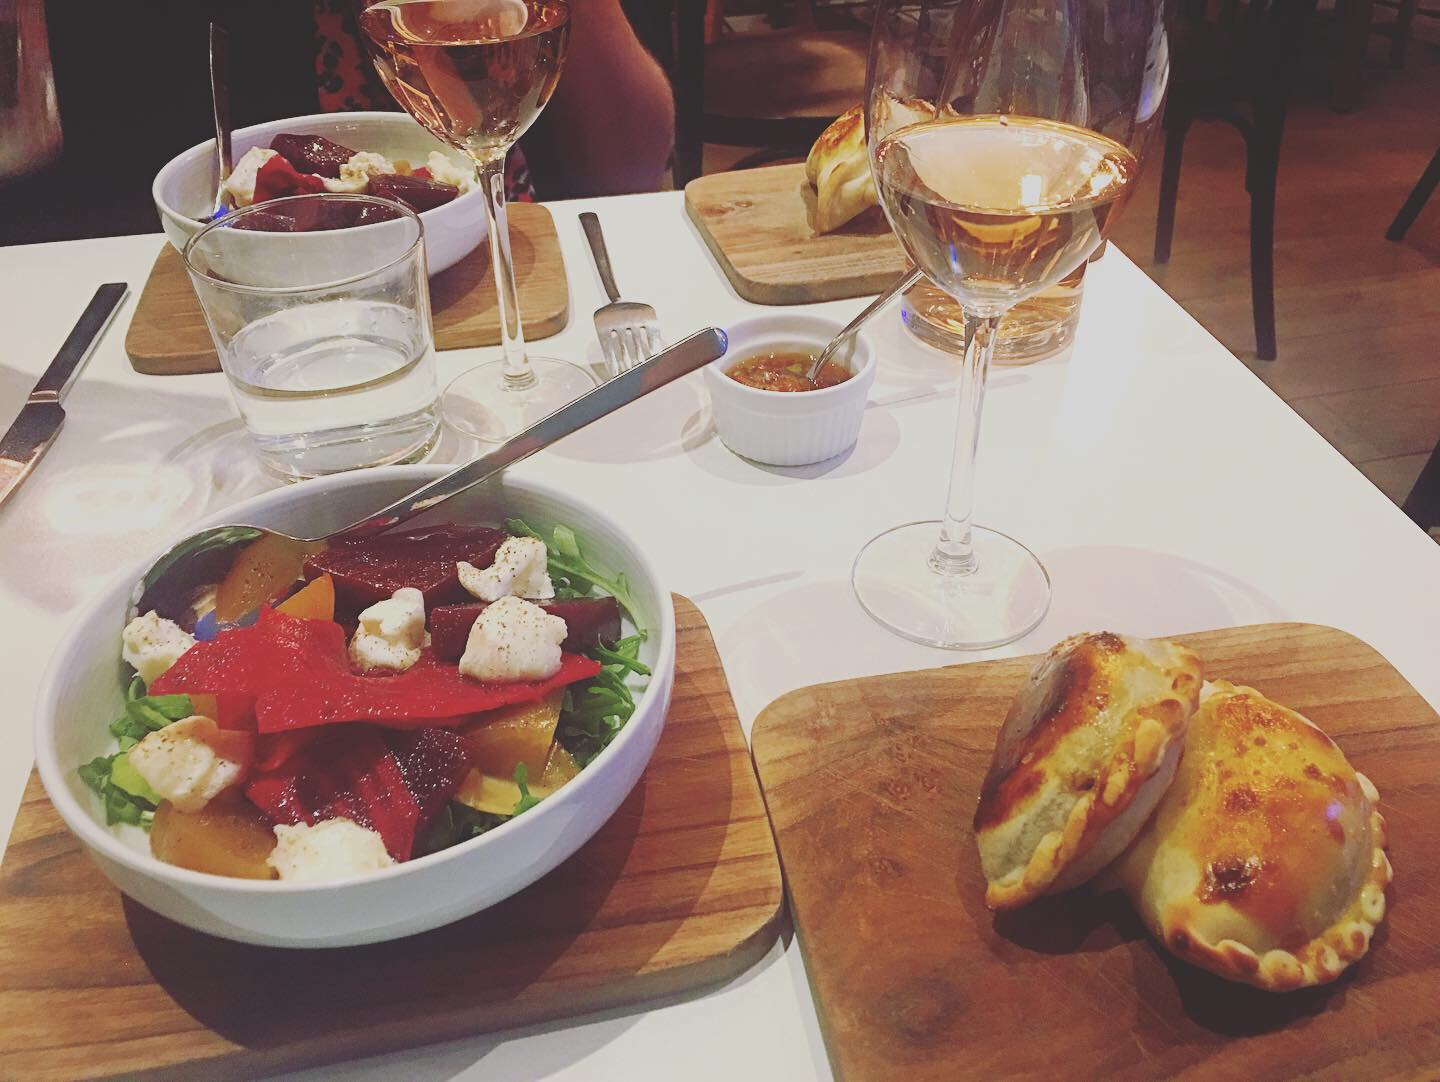 Empanadas, a small salad and wine set at the table